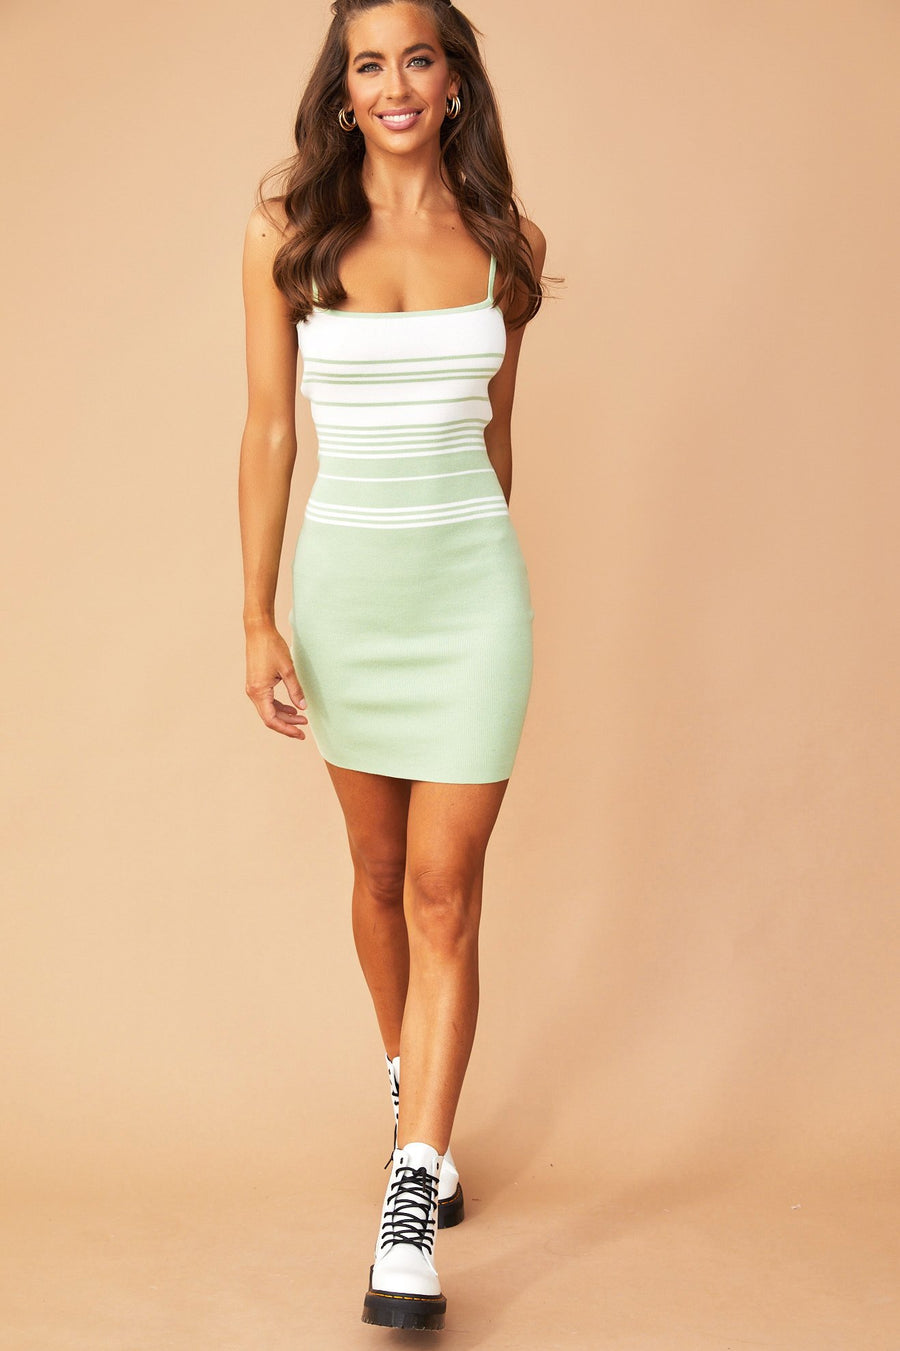 Monique Strap Dress // Lime | Sage and Paige.?id=25780540506281